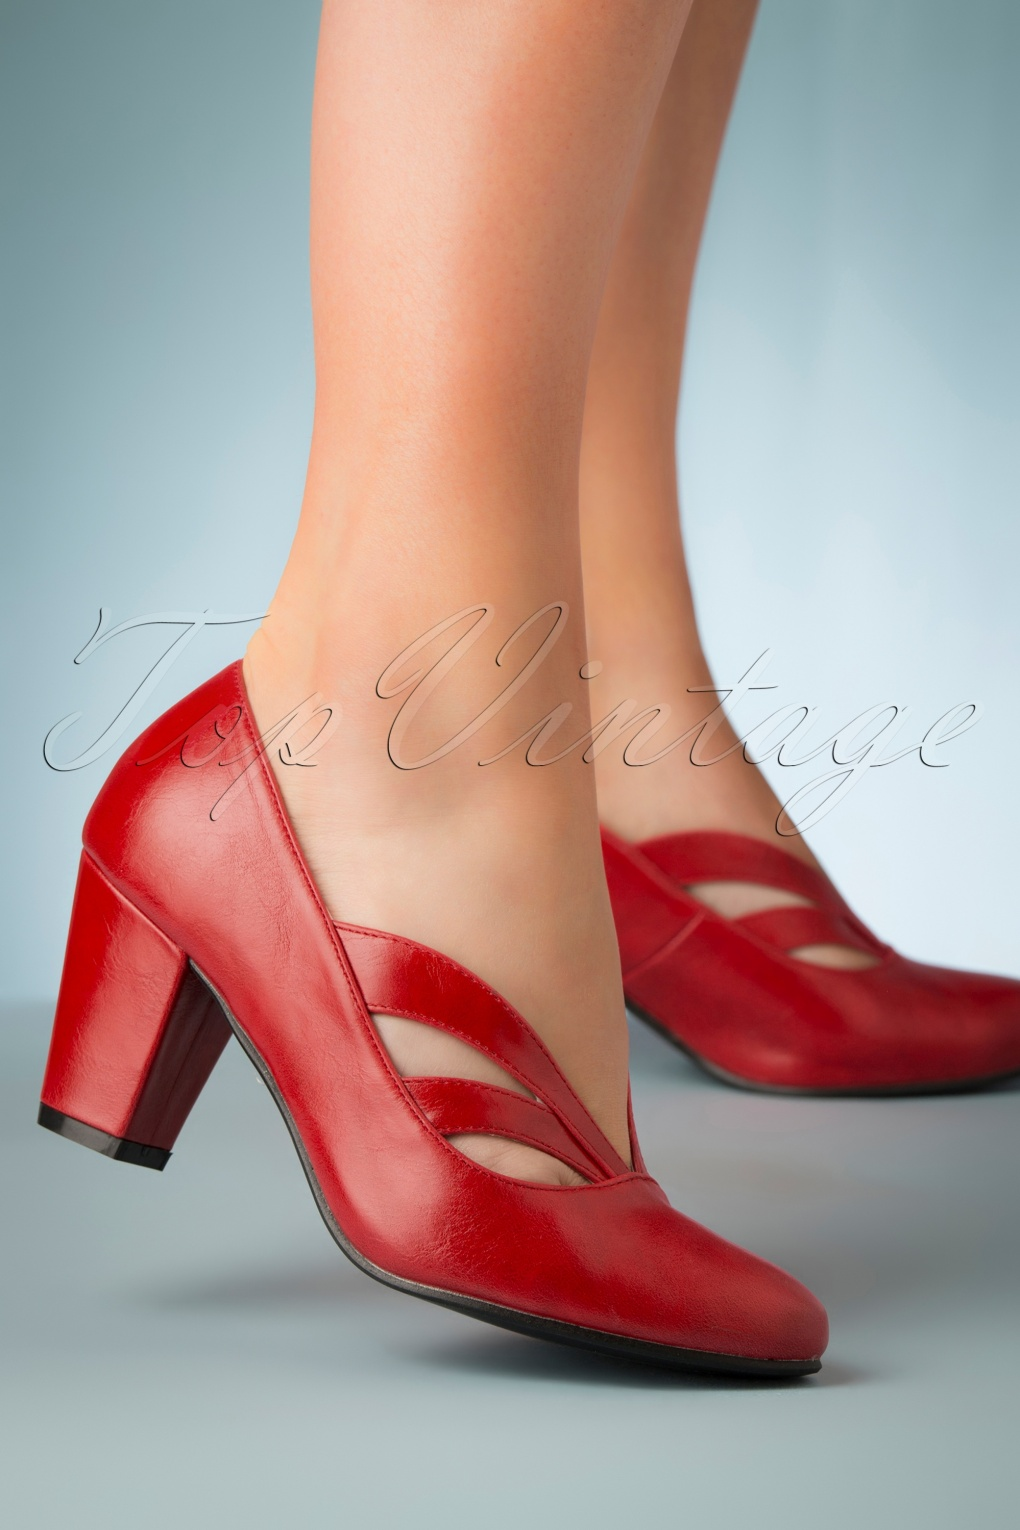 10 Popular 1940s Shoes Styles for Women 40s Layla Pumps in Red �45.79 AT vintagedancer.com